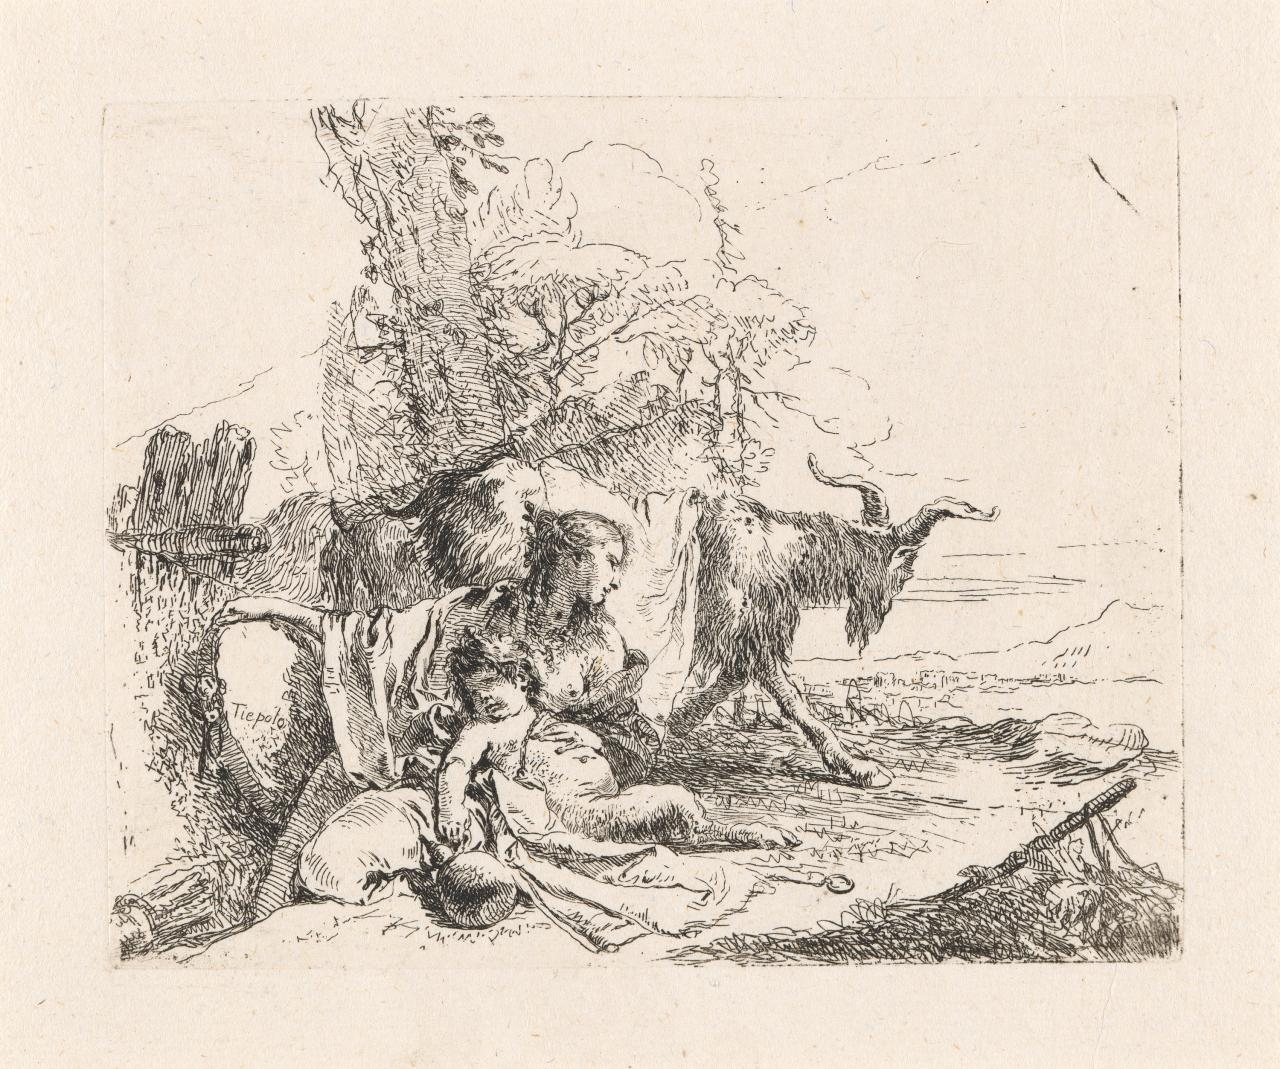 A nymph with a small satyr and two goats